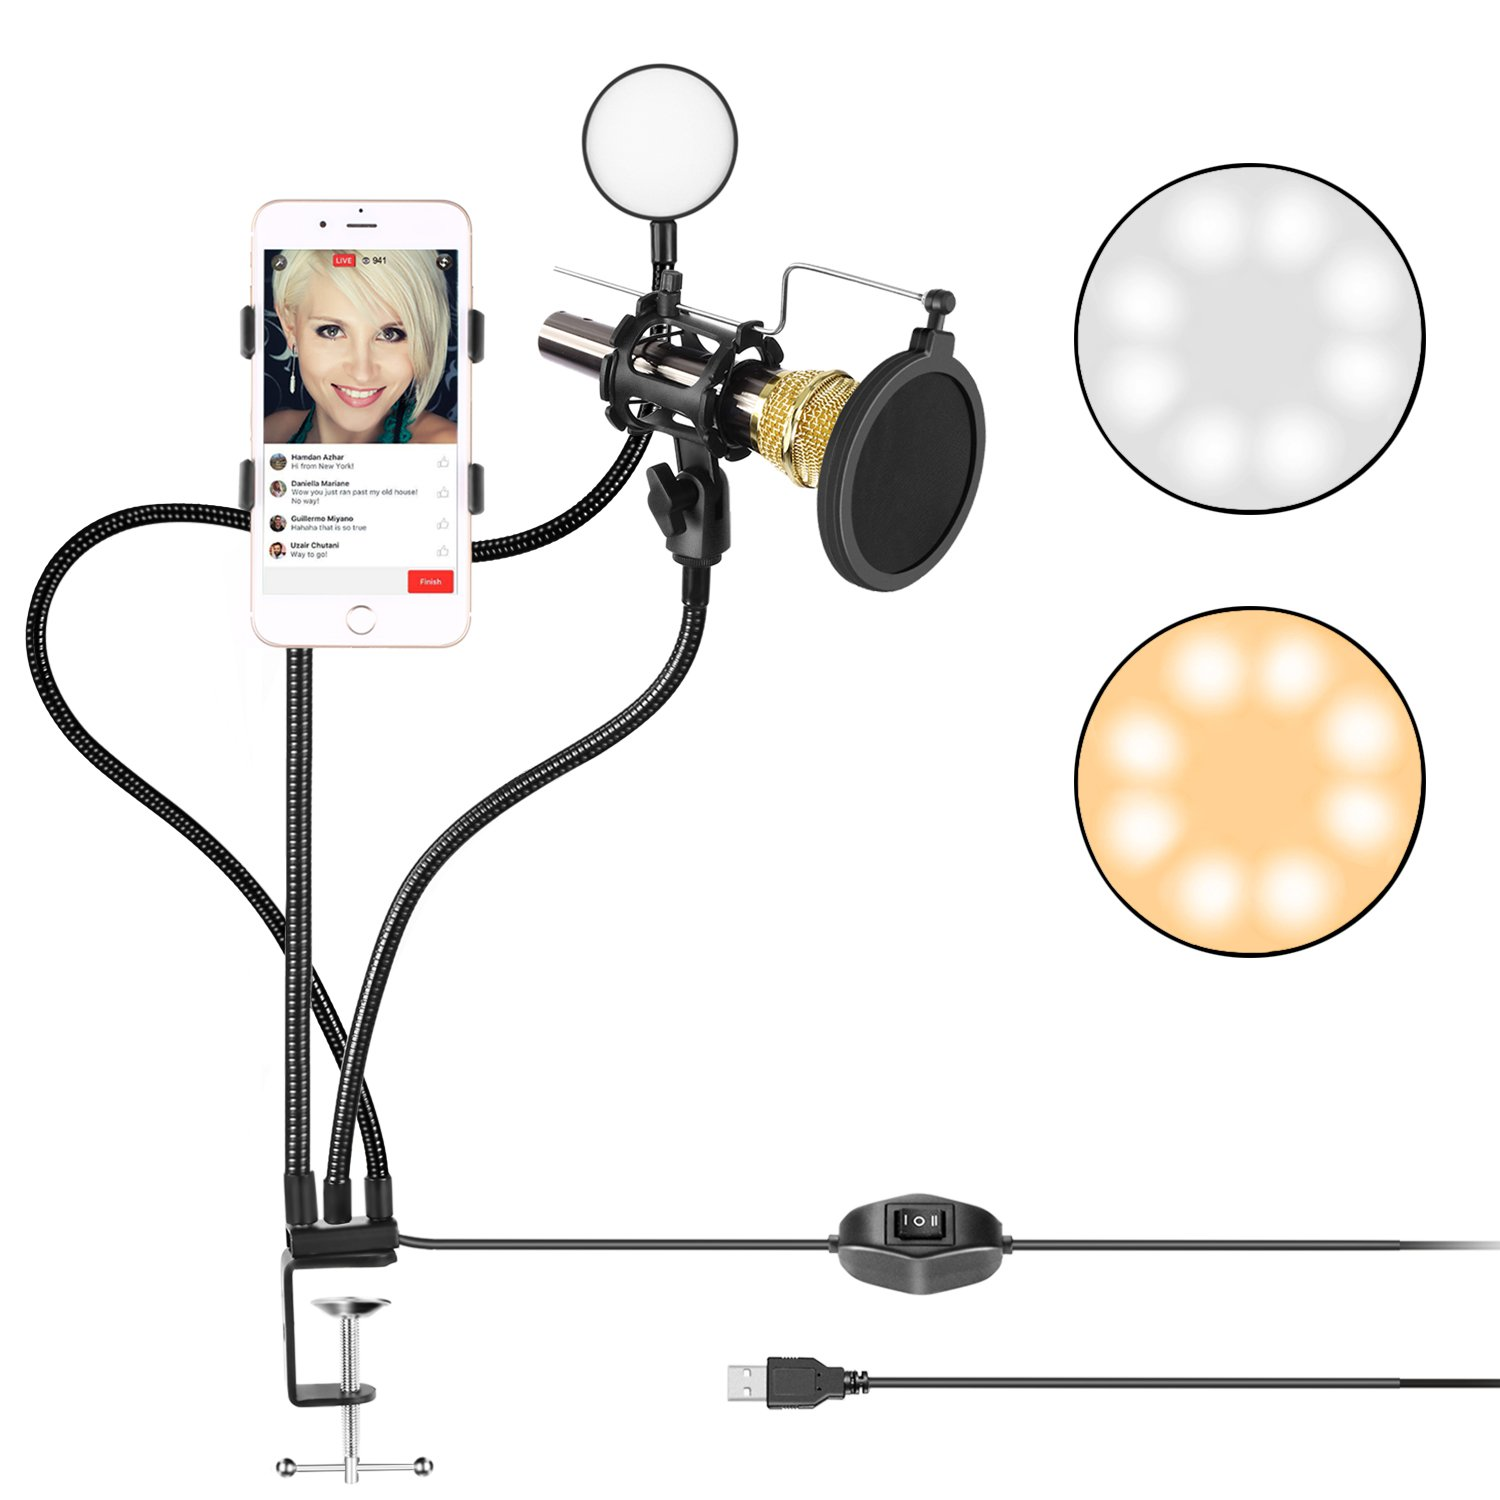 Neewer Clamp-on Live Broadcast USB LED Selfie Ring Light with Cellphone and Microphone Holder for Youtube Video,2-Light Mode,360 Degree Rotating Flexible Arm for iPhone,Samsung(Mic,Phone NOT Included) by Neewer